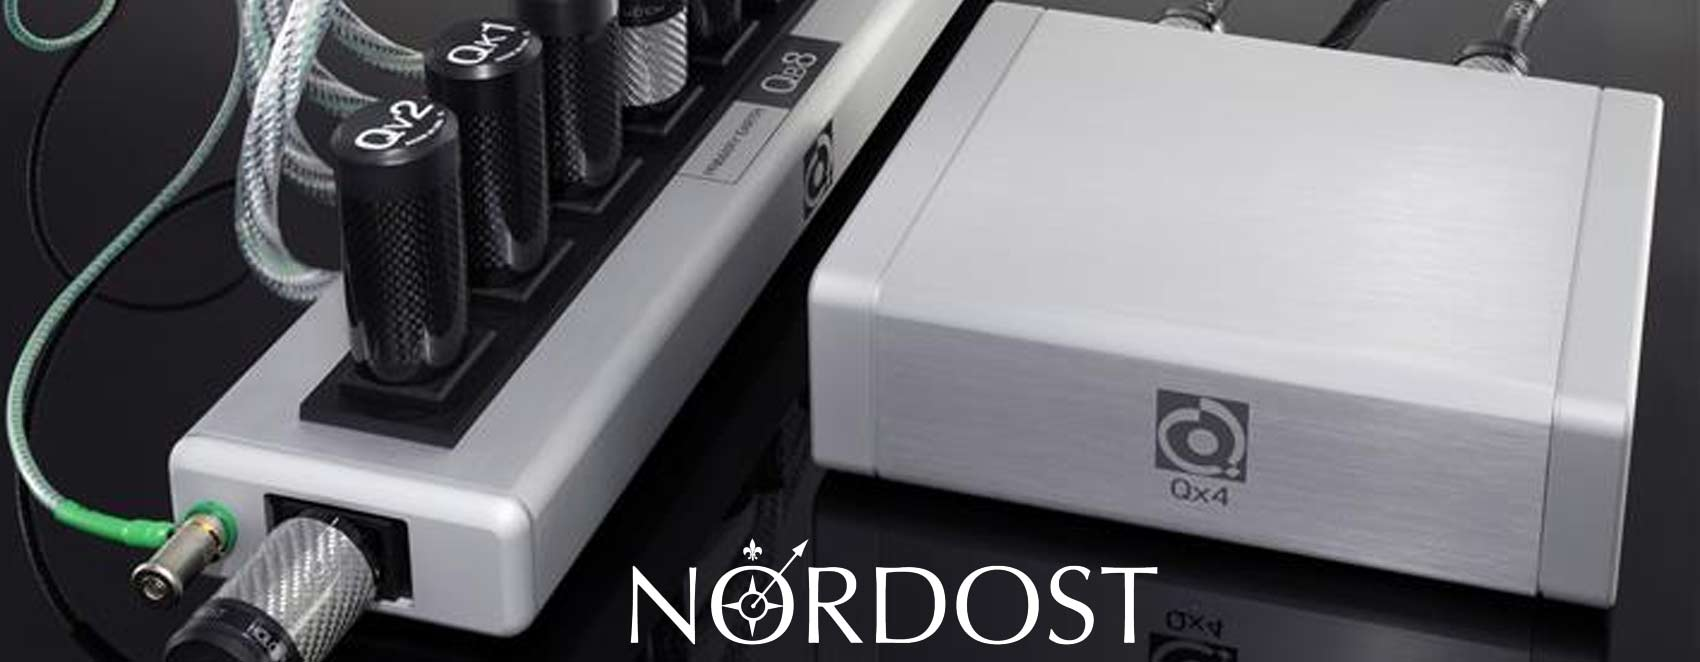 Nordost power cables, earth systems